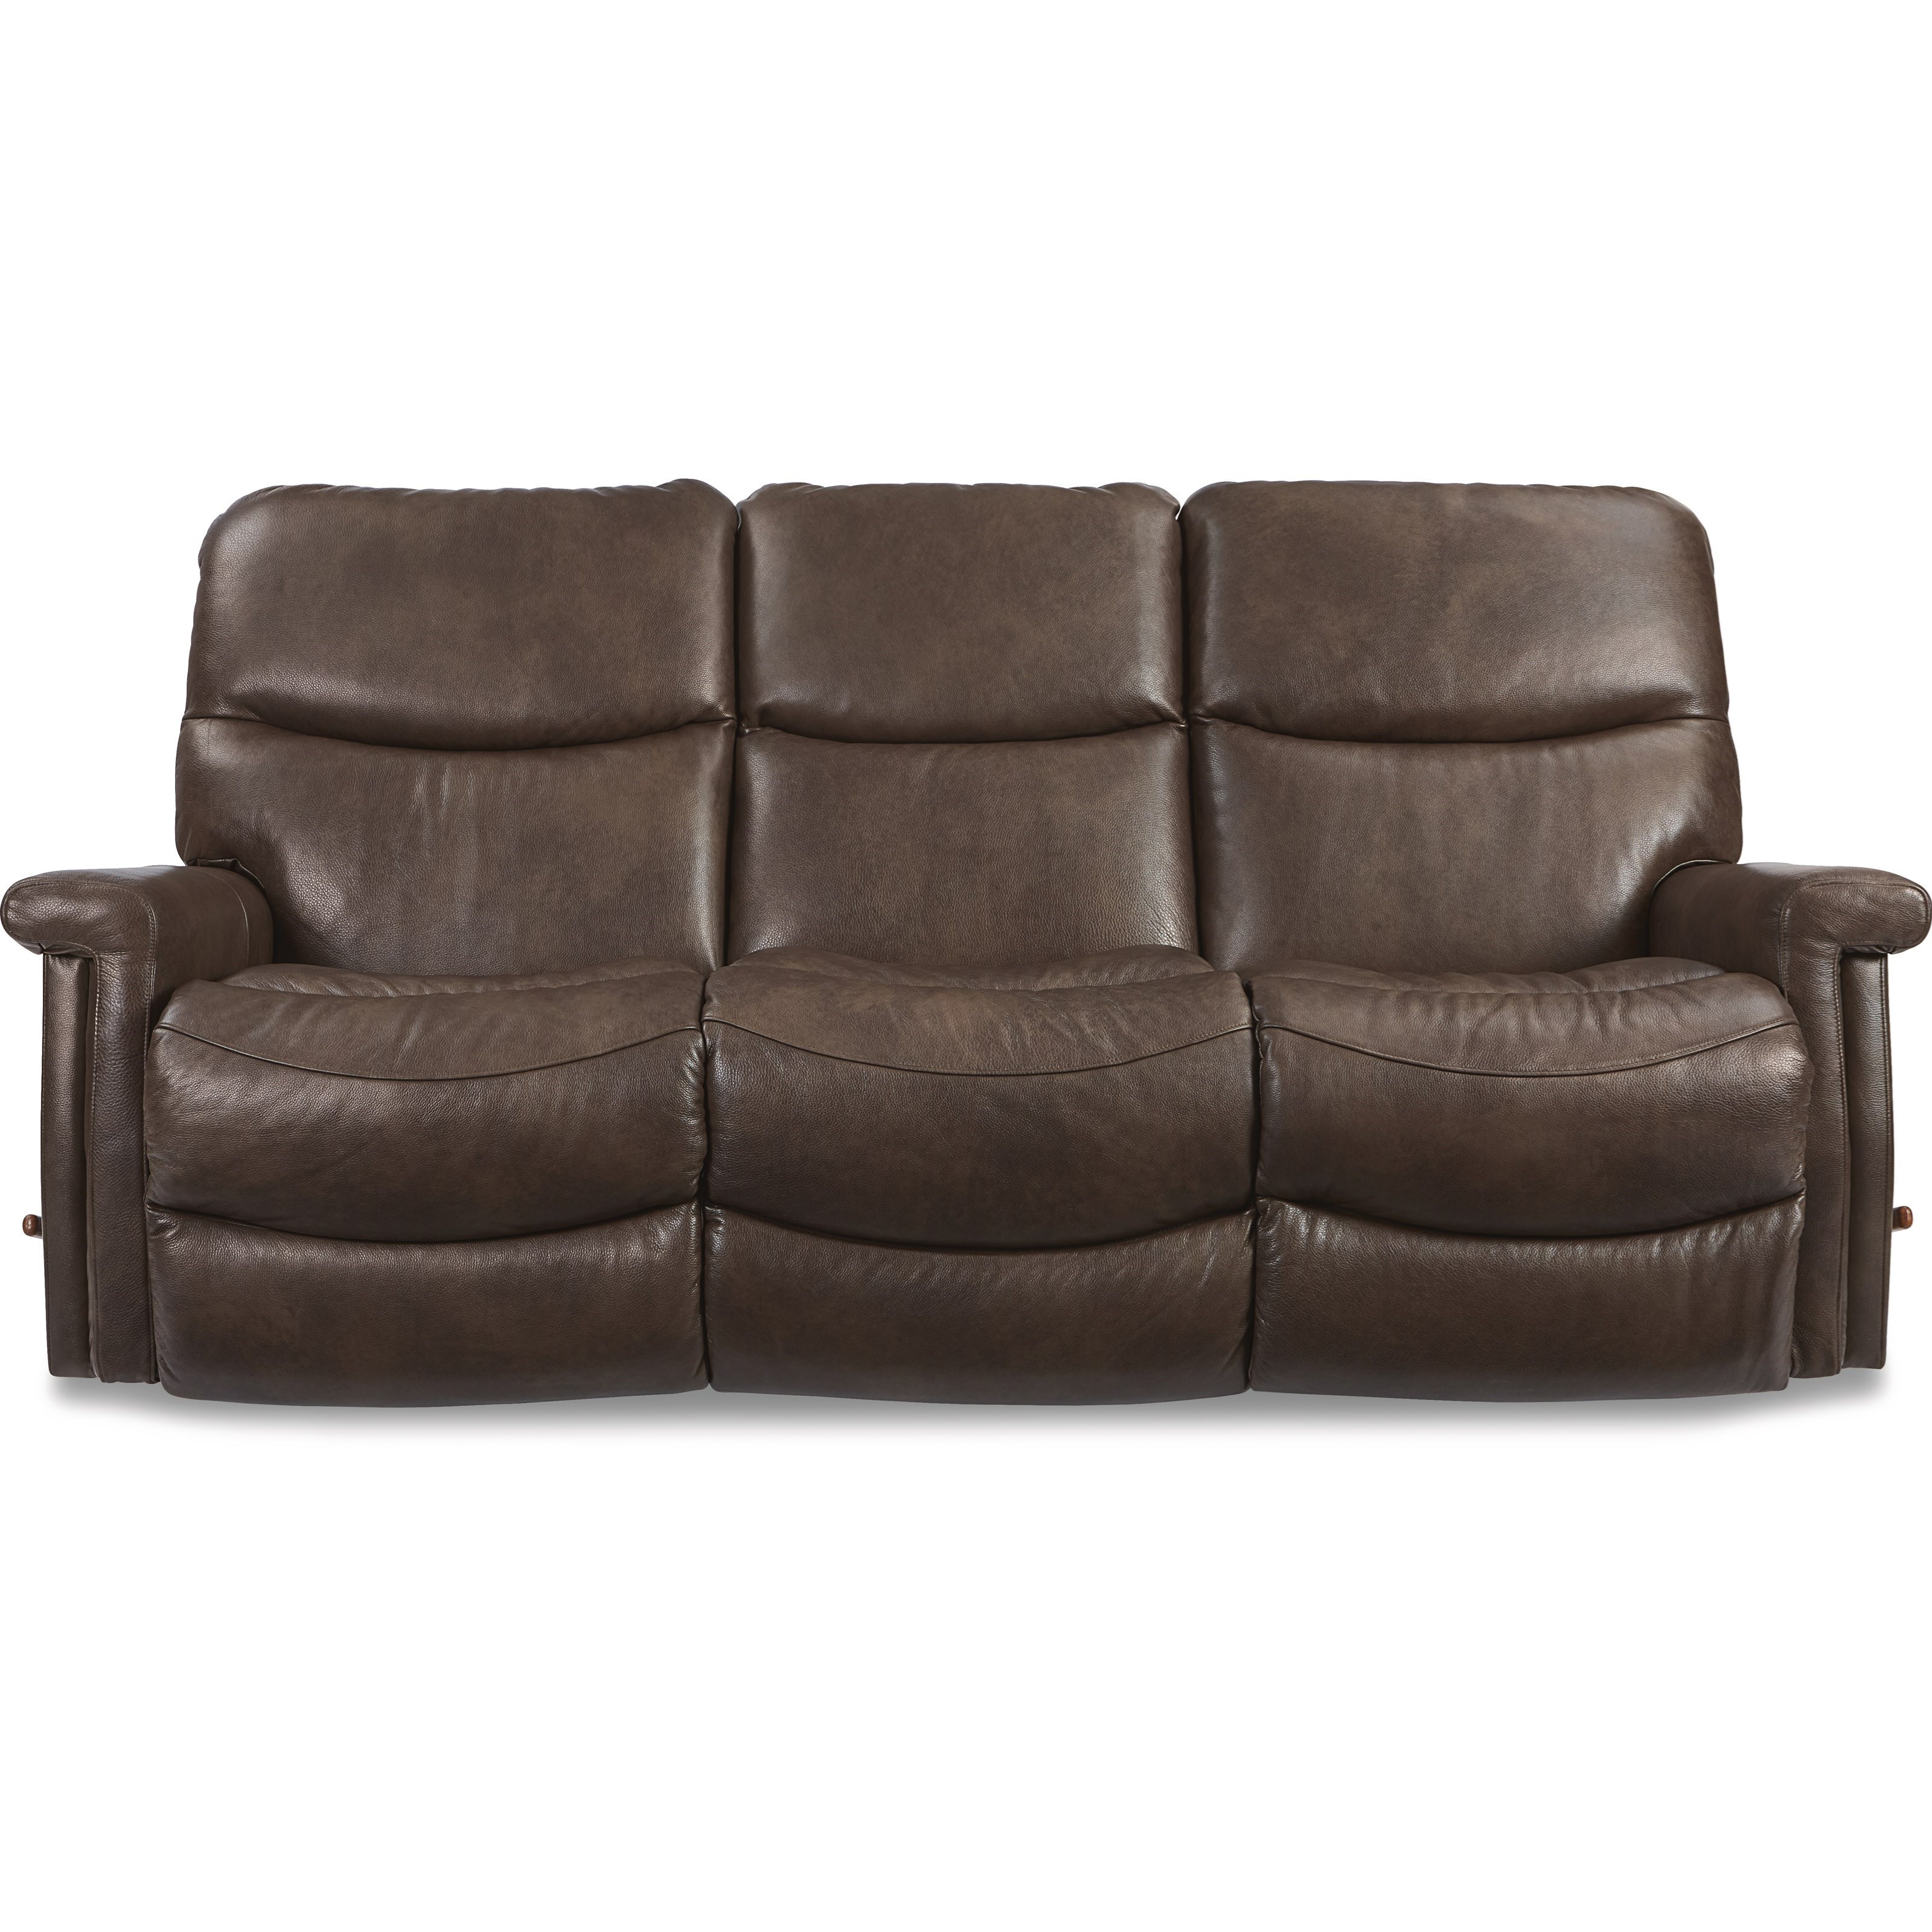 lane molly double reclining sofa dark brown leather polish for wall saver sofas